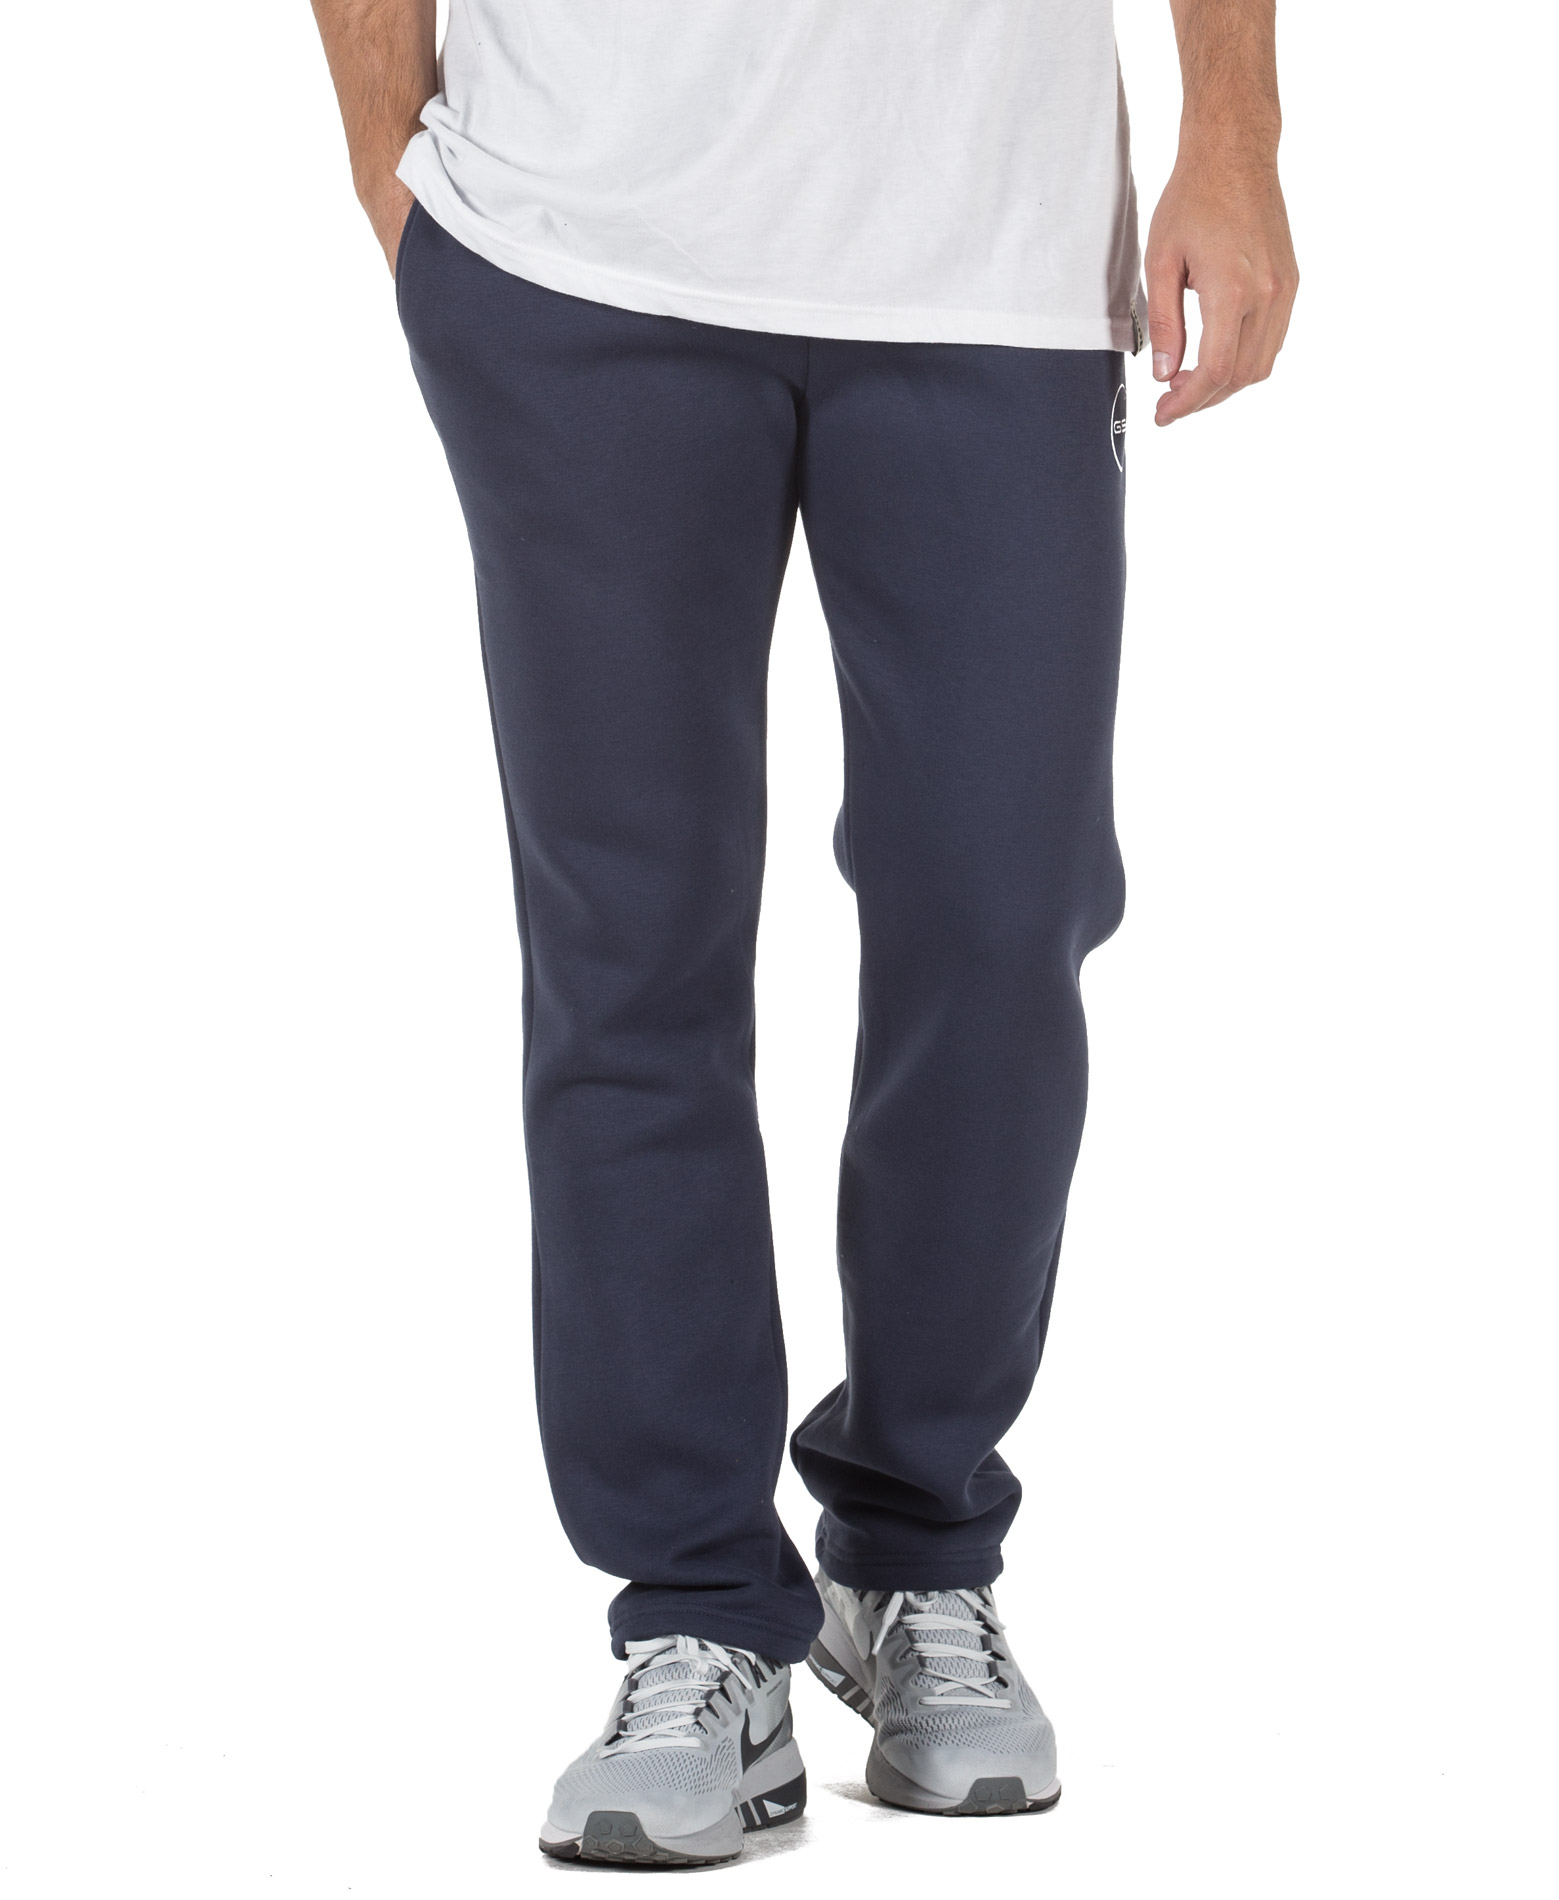 GSA SUPERCOTTON BOOTCUT SWEATPANTS 17-17028-03 BLUE MARINE Μπλε